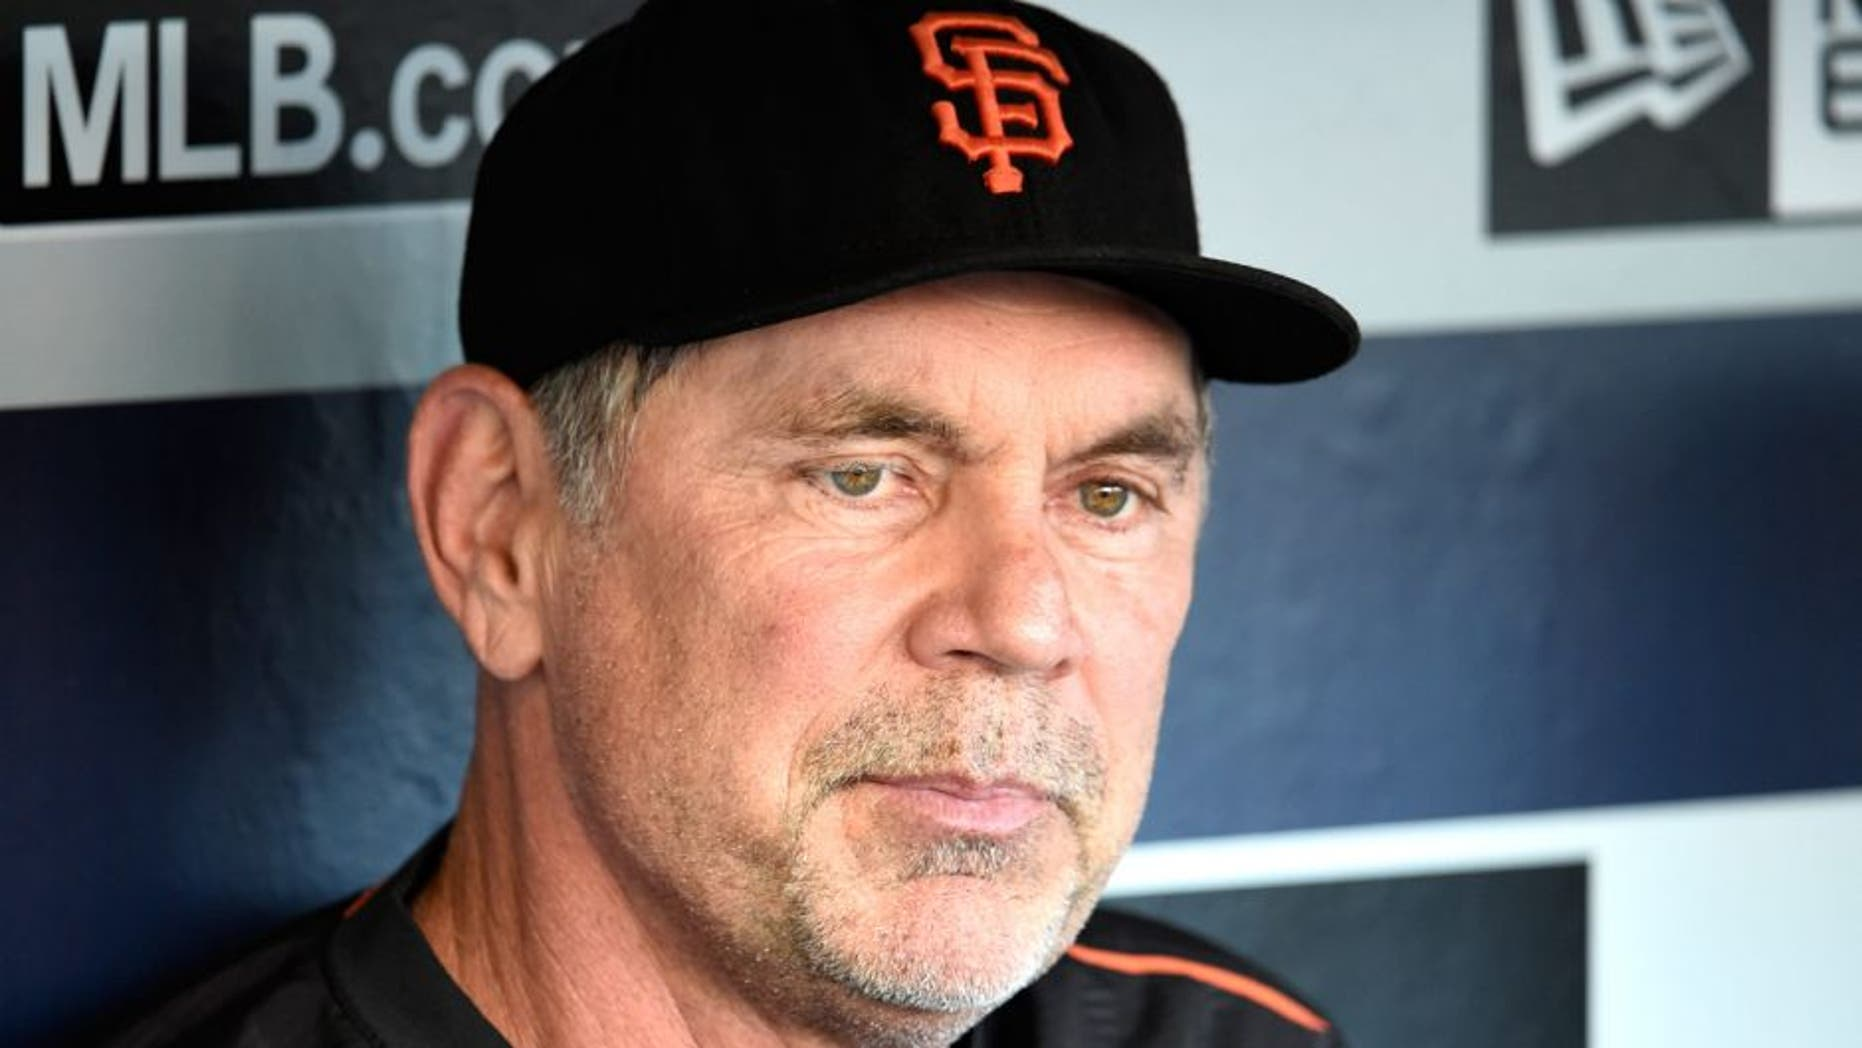 SAN DIEGO, CA - SEPTEMBER 22: Bruce Bochy #15 of the San Francisco Giants answers a question in the dugout before a baseball game against the San Diego Padres at Petco Park September 22, 2015 in San Diego, California. (Photo by Denis Poroy/Getty Images)